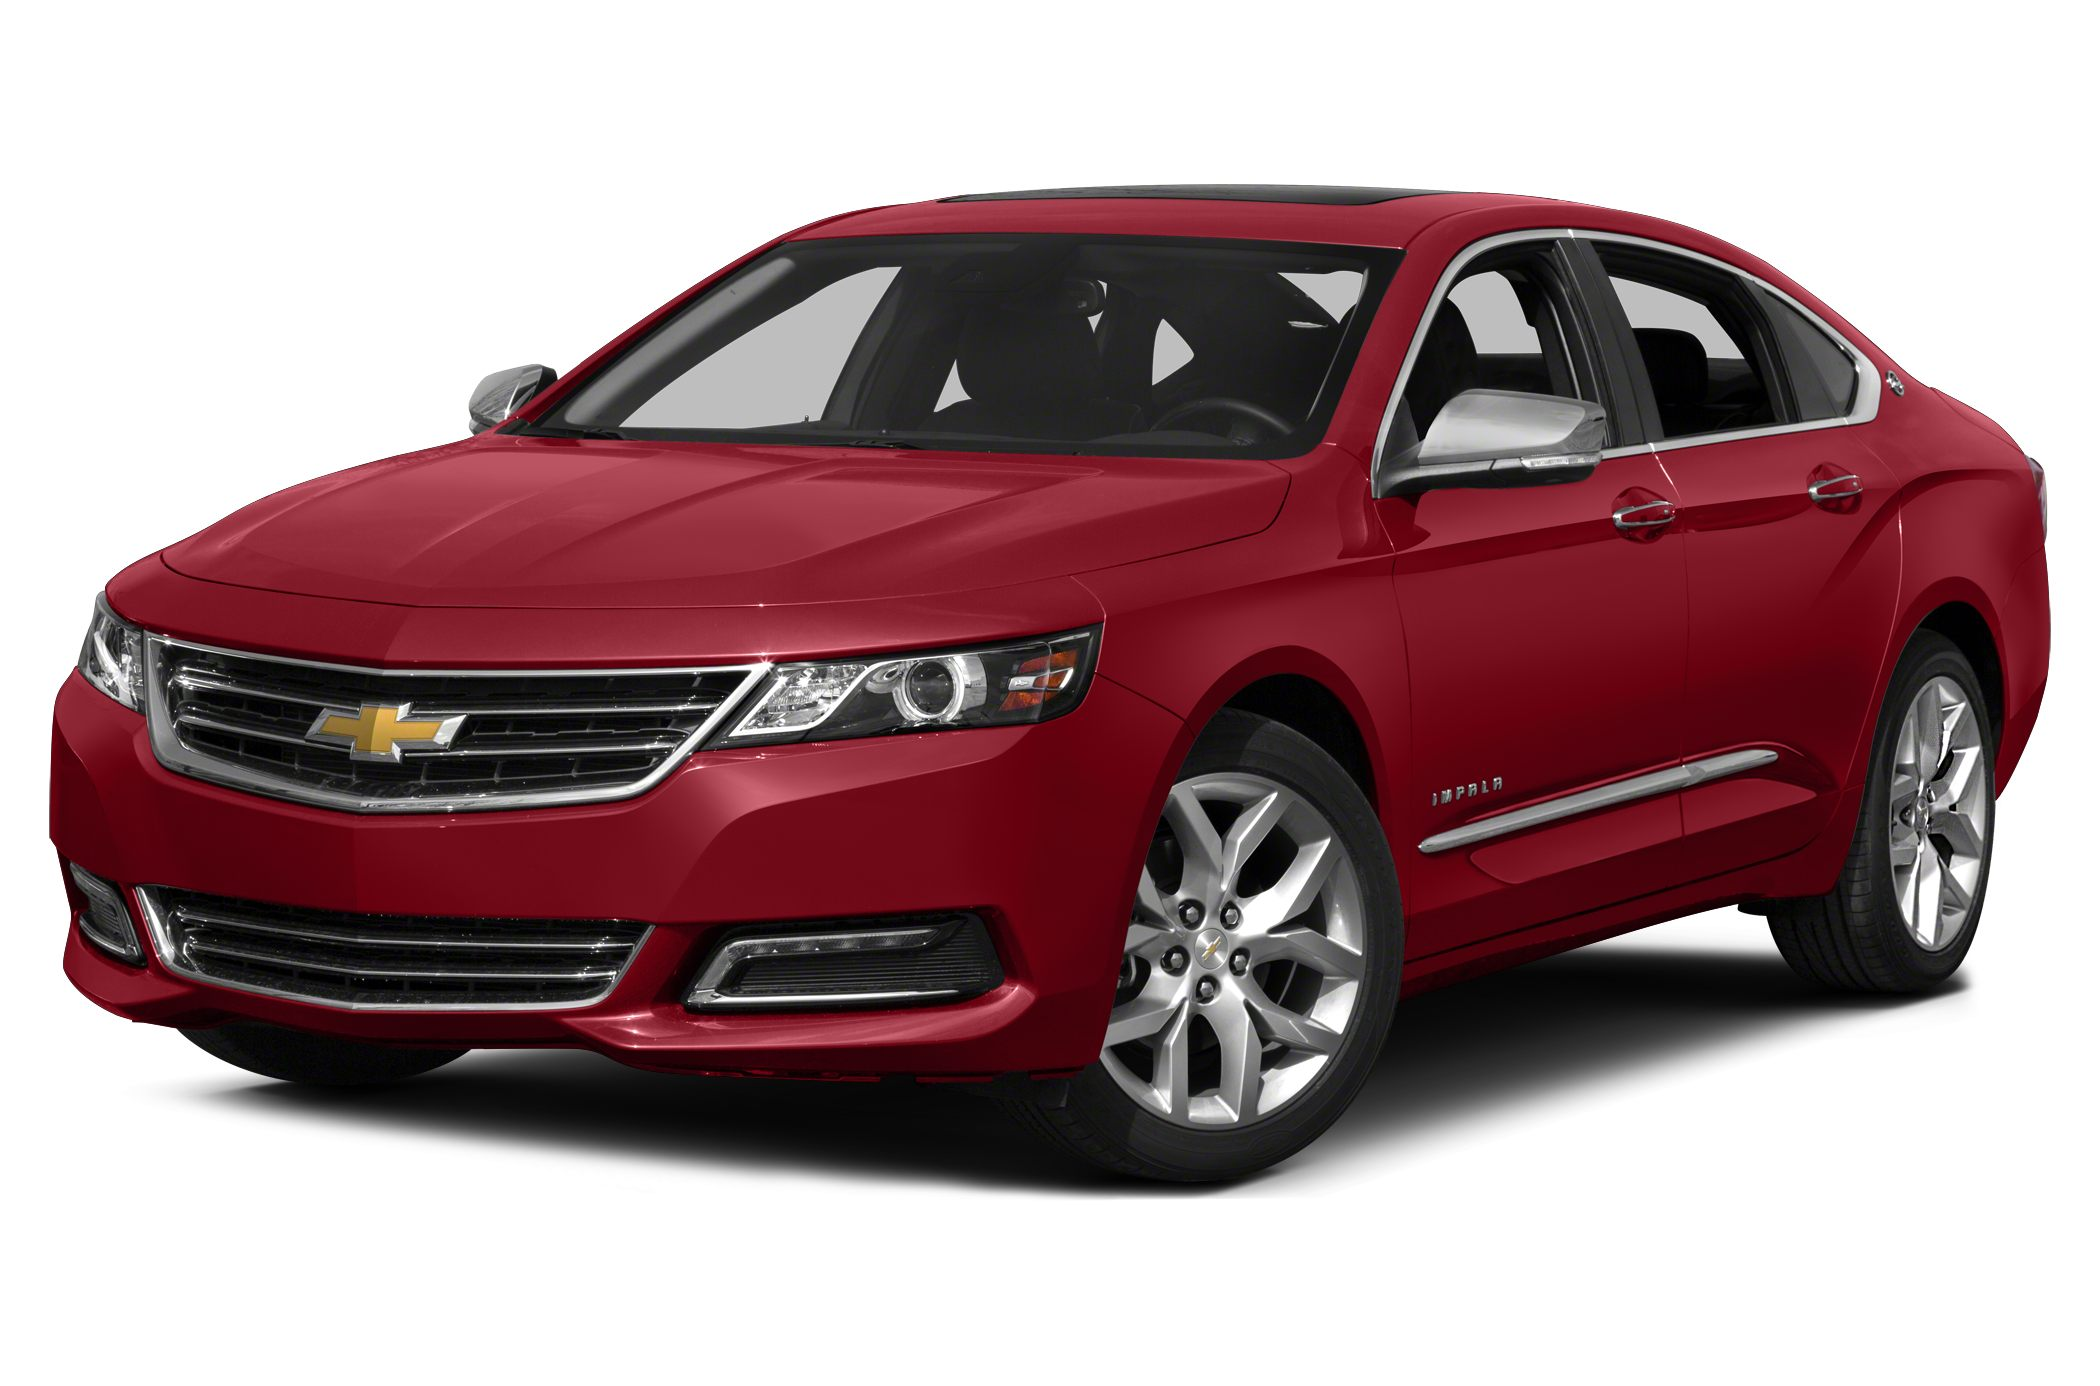 2014 Chevrolet Impala 1LZ Sedan for sale in Demotte for $25,388 with 12,064 miles.